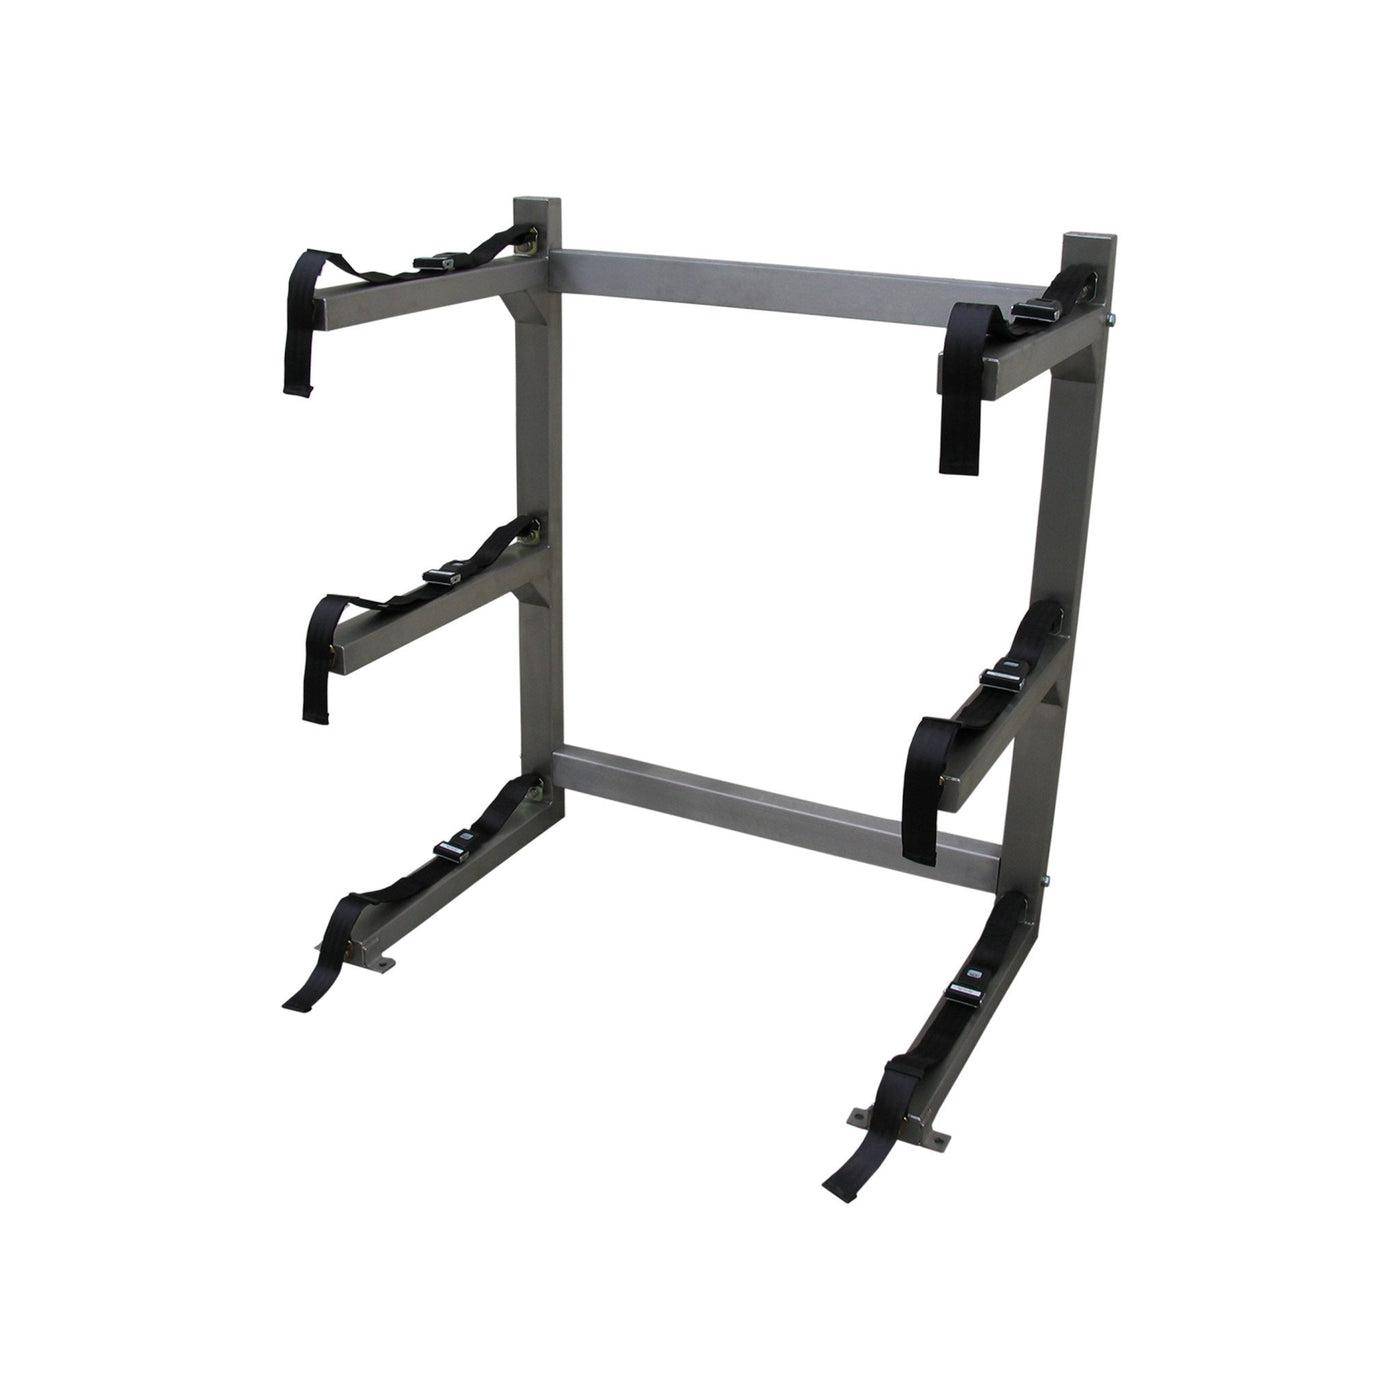 Truck Racks-Cadaver Handling & Storage Systems-Mortech Manufacturing Company Inc. Quality Stainless Steel Autopsy, Morgue, Funeral Home, Necropsy, Veterinary / Anatomy, Dissection Equipment and Accessories